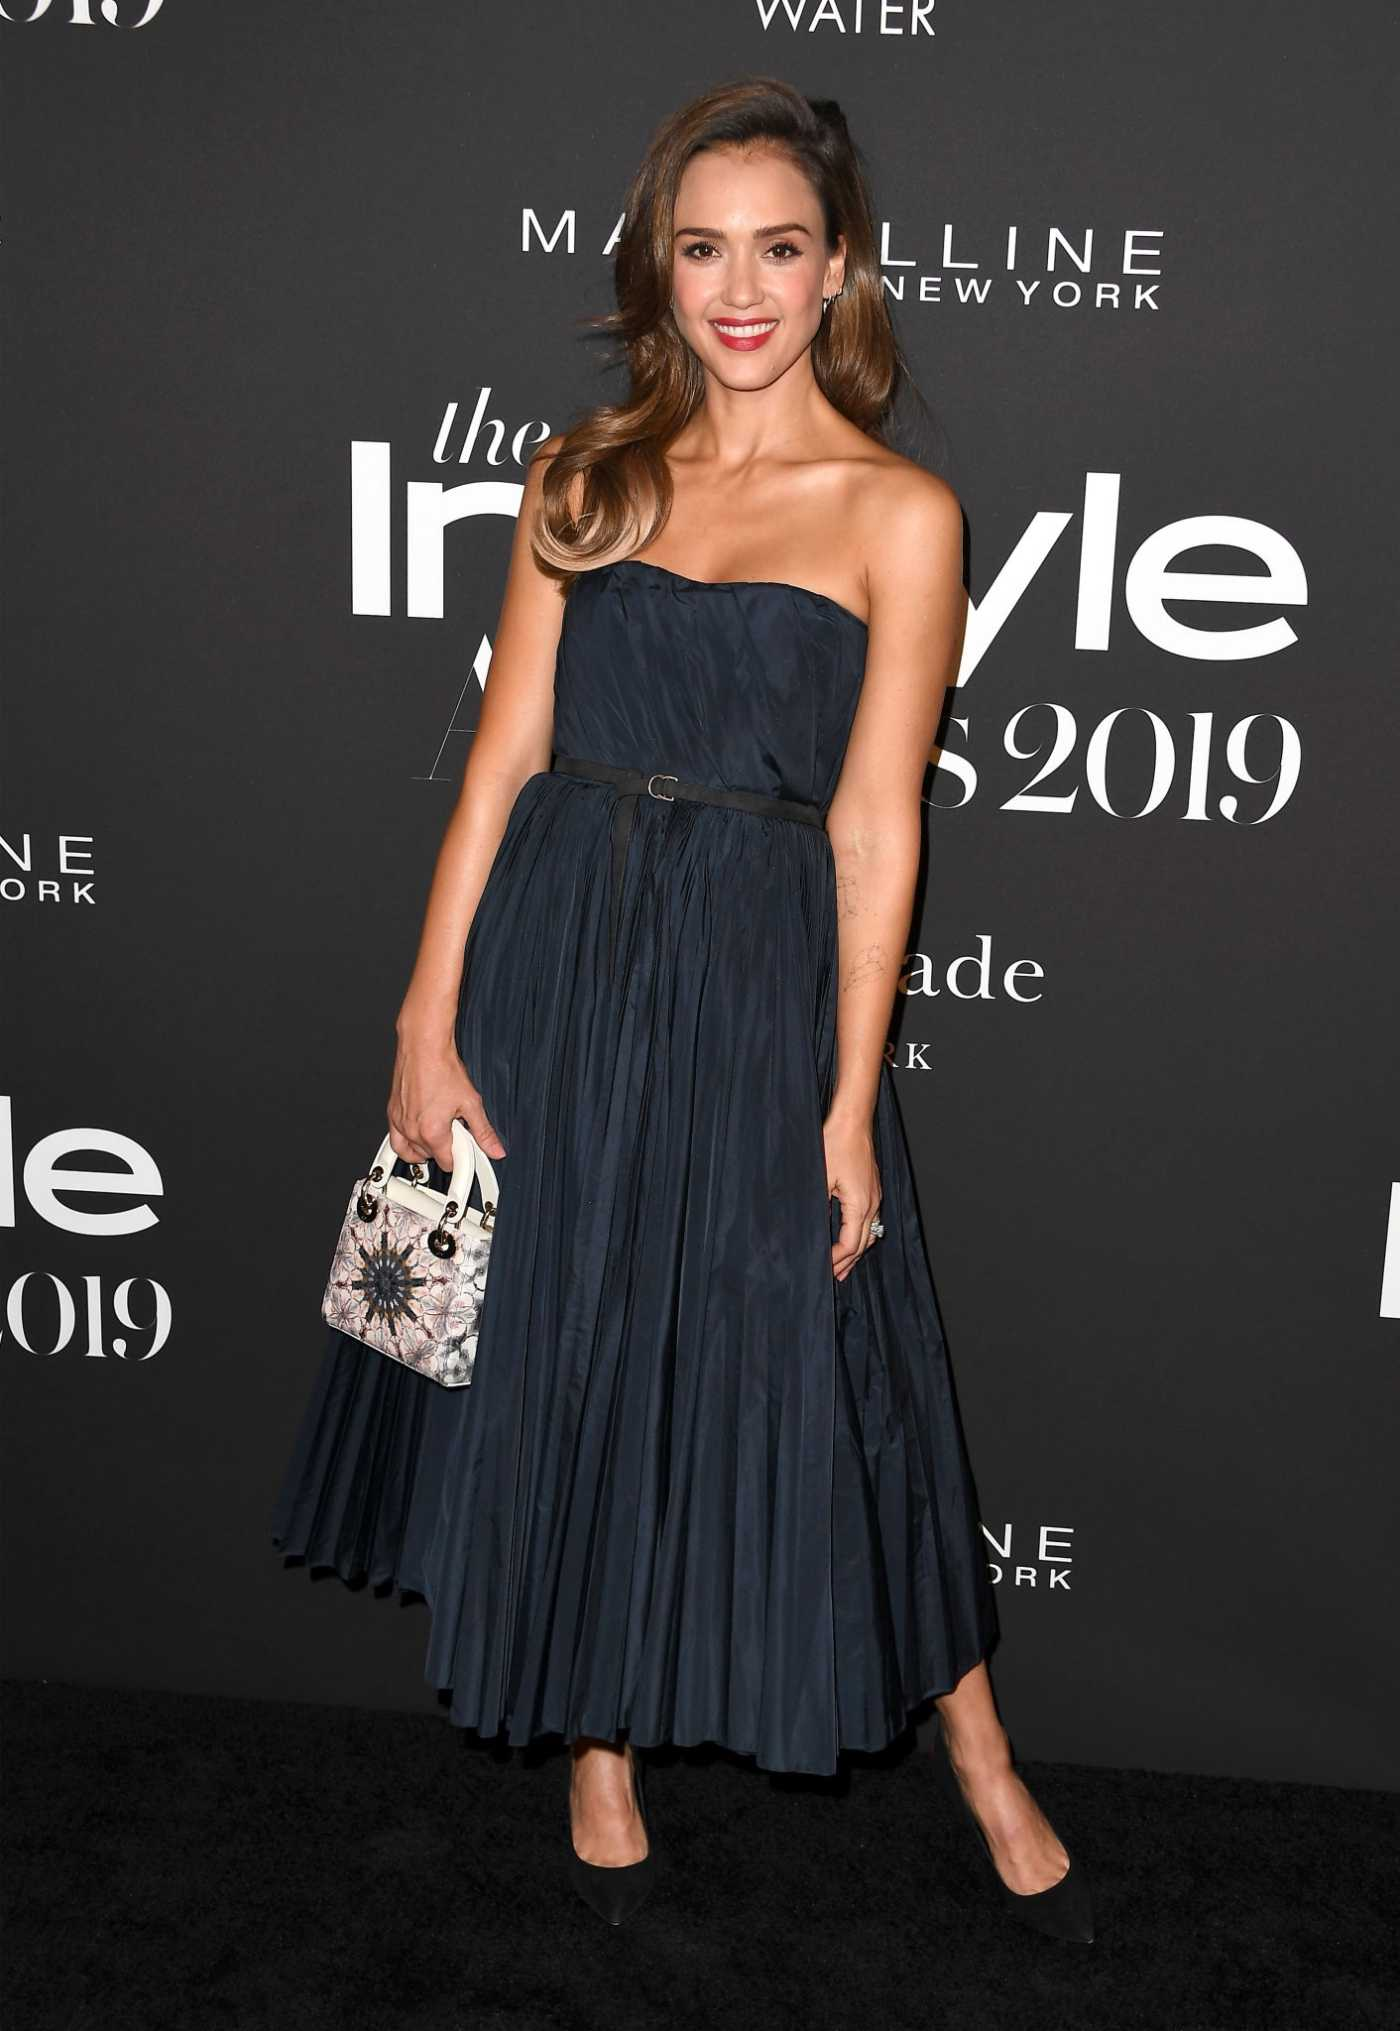 Jessica Alba Attends the 5th Annual InStyle Awards in Los Angeles 10/21/2019